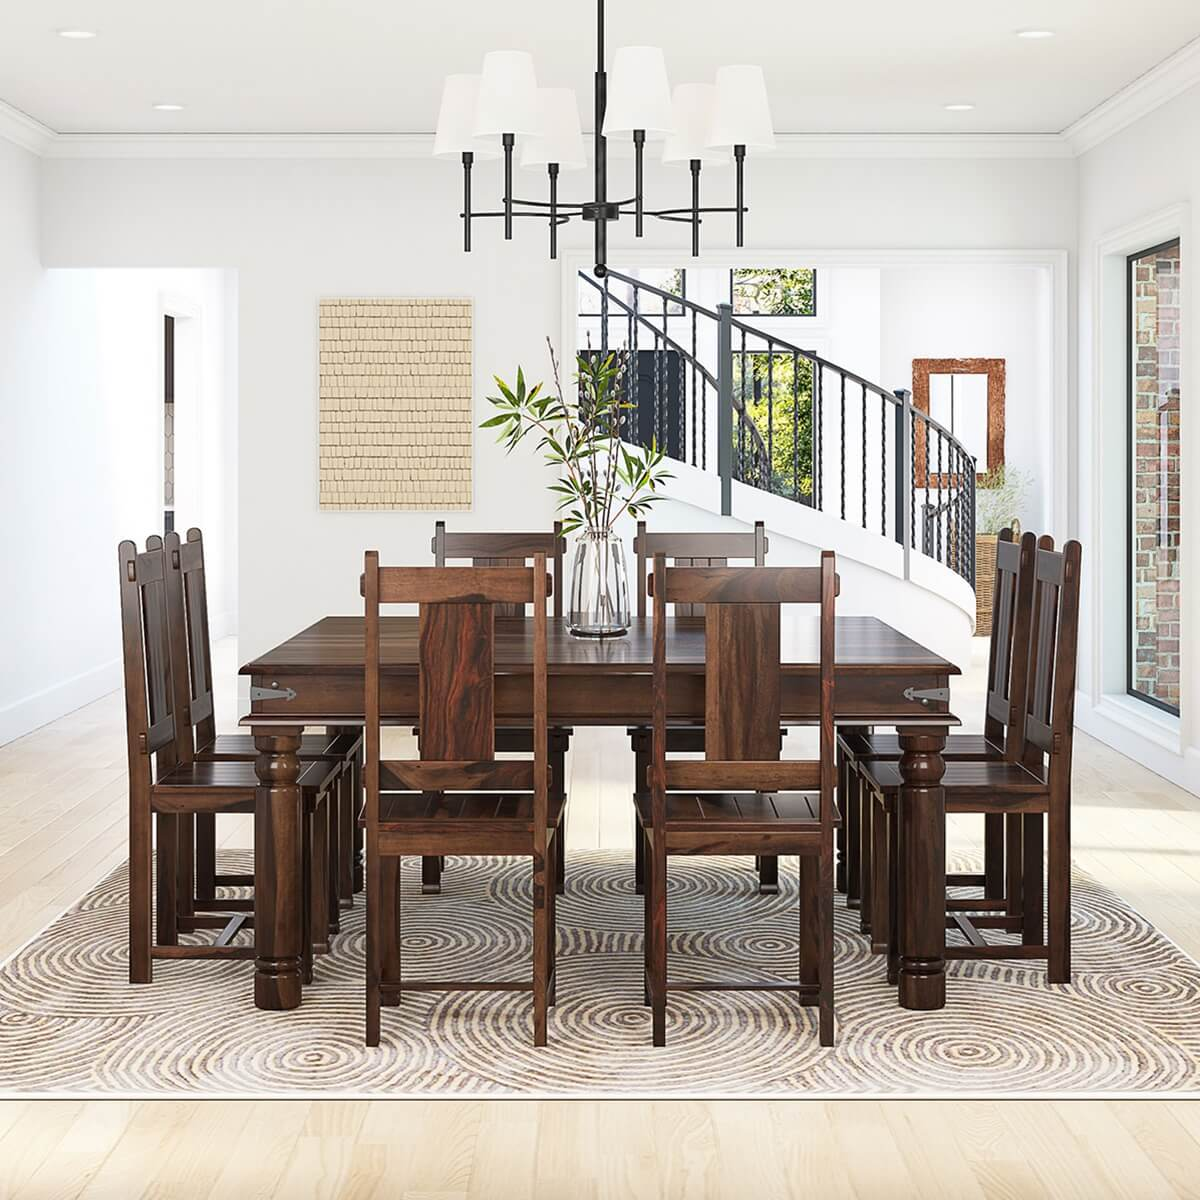 Rustic Wood Chairs Rustic Solid Wood Large Square Dining Table Chair Set